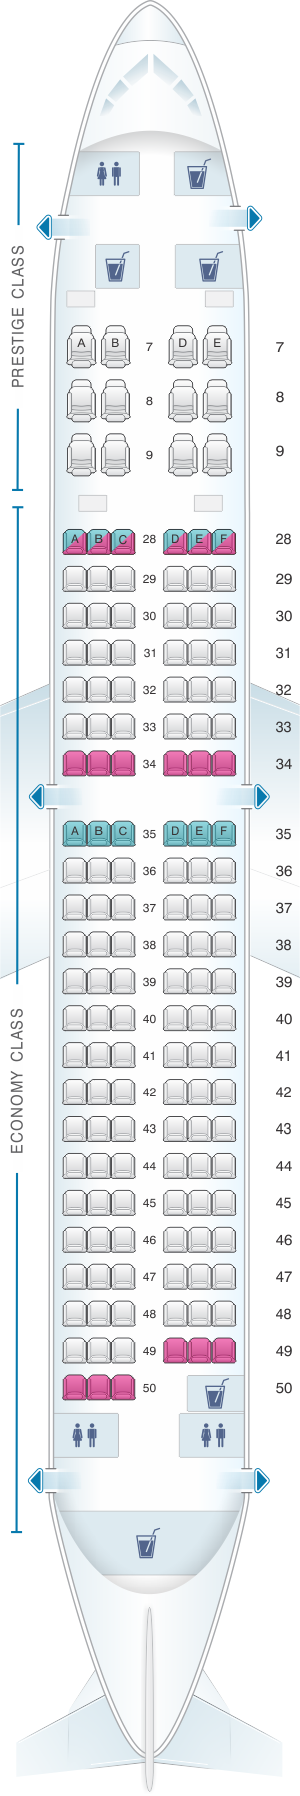 Seat map for Korean Air Boeing B737 800 147PAX